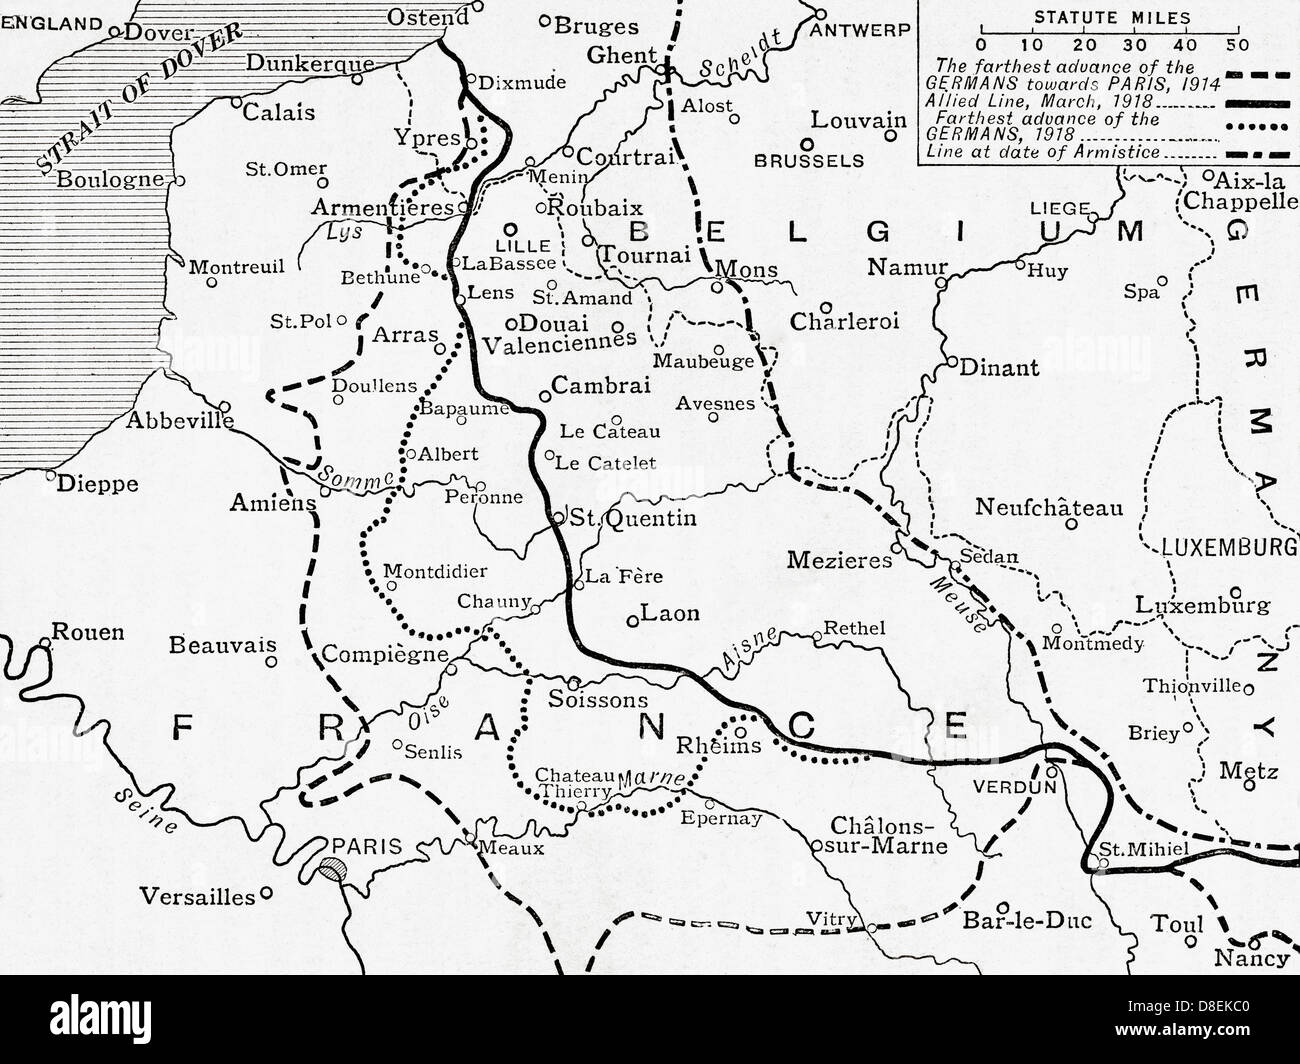 Map world war one stock photos map world war one stock images alamy map showing the lines of advance of the germans through france during world war one gumiabroncs Choice Image